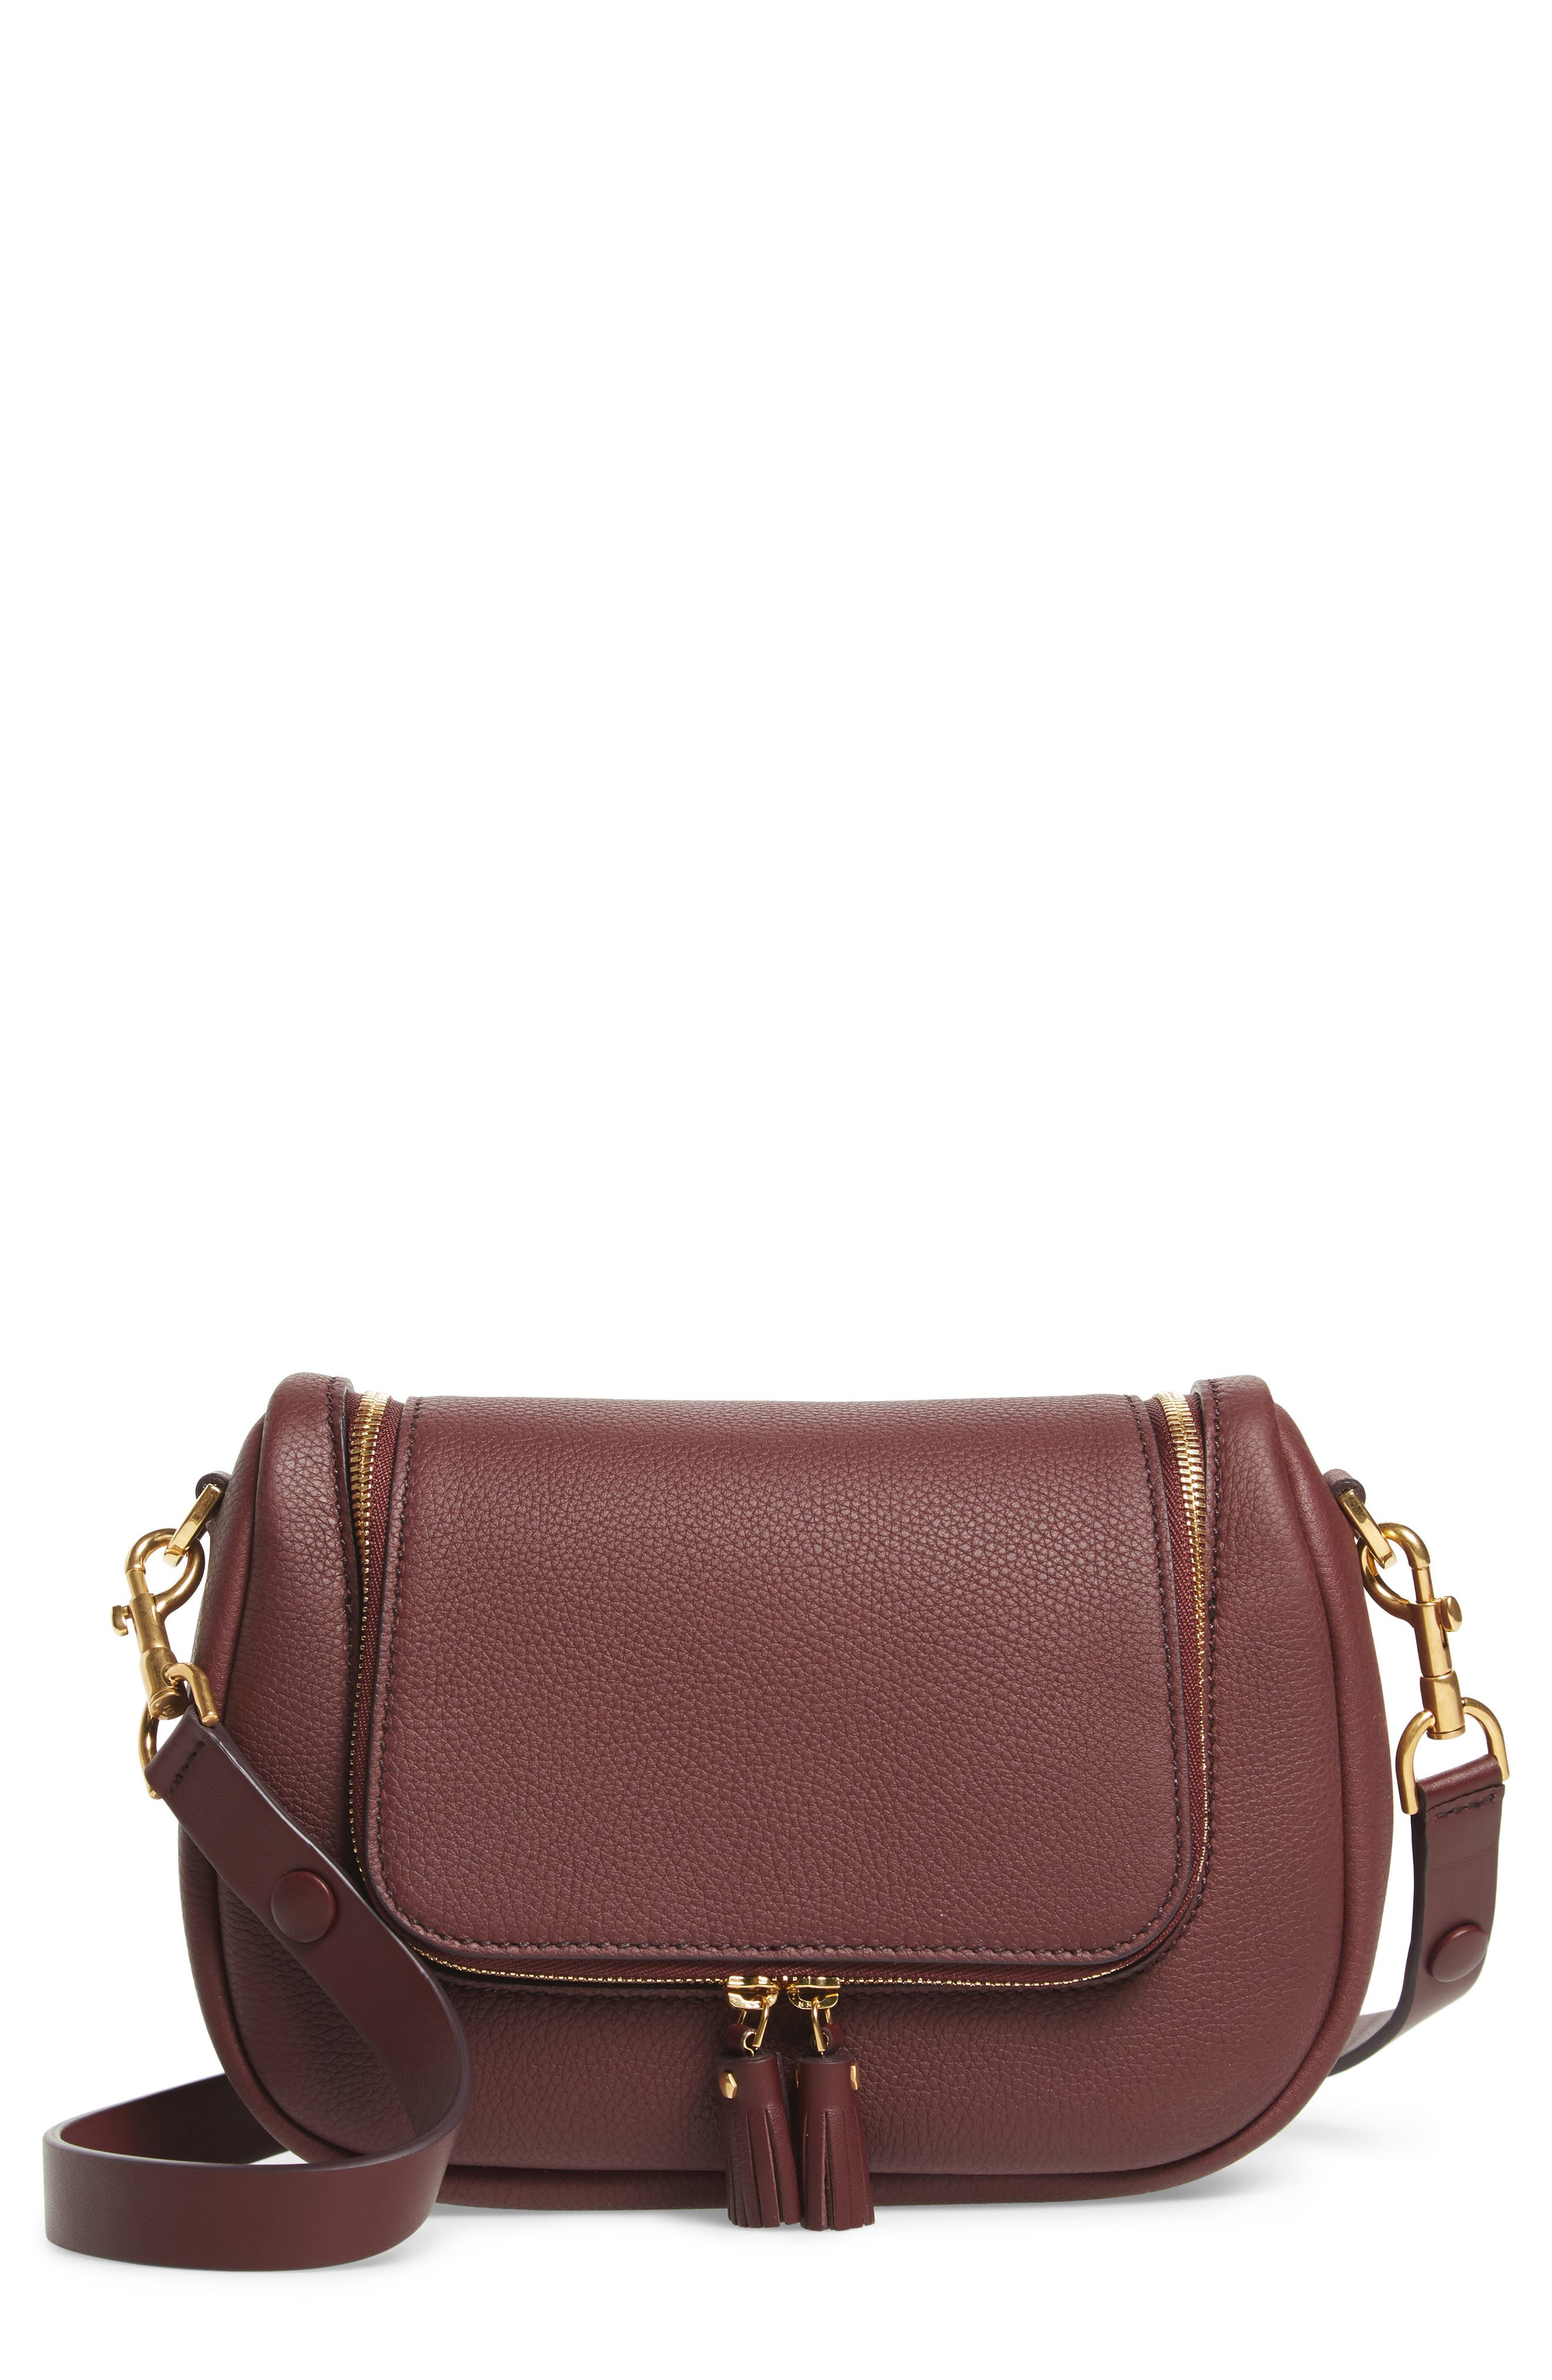 Small Vere Leather Crossbody Satchel - Red in Claret